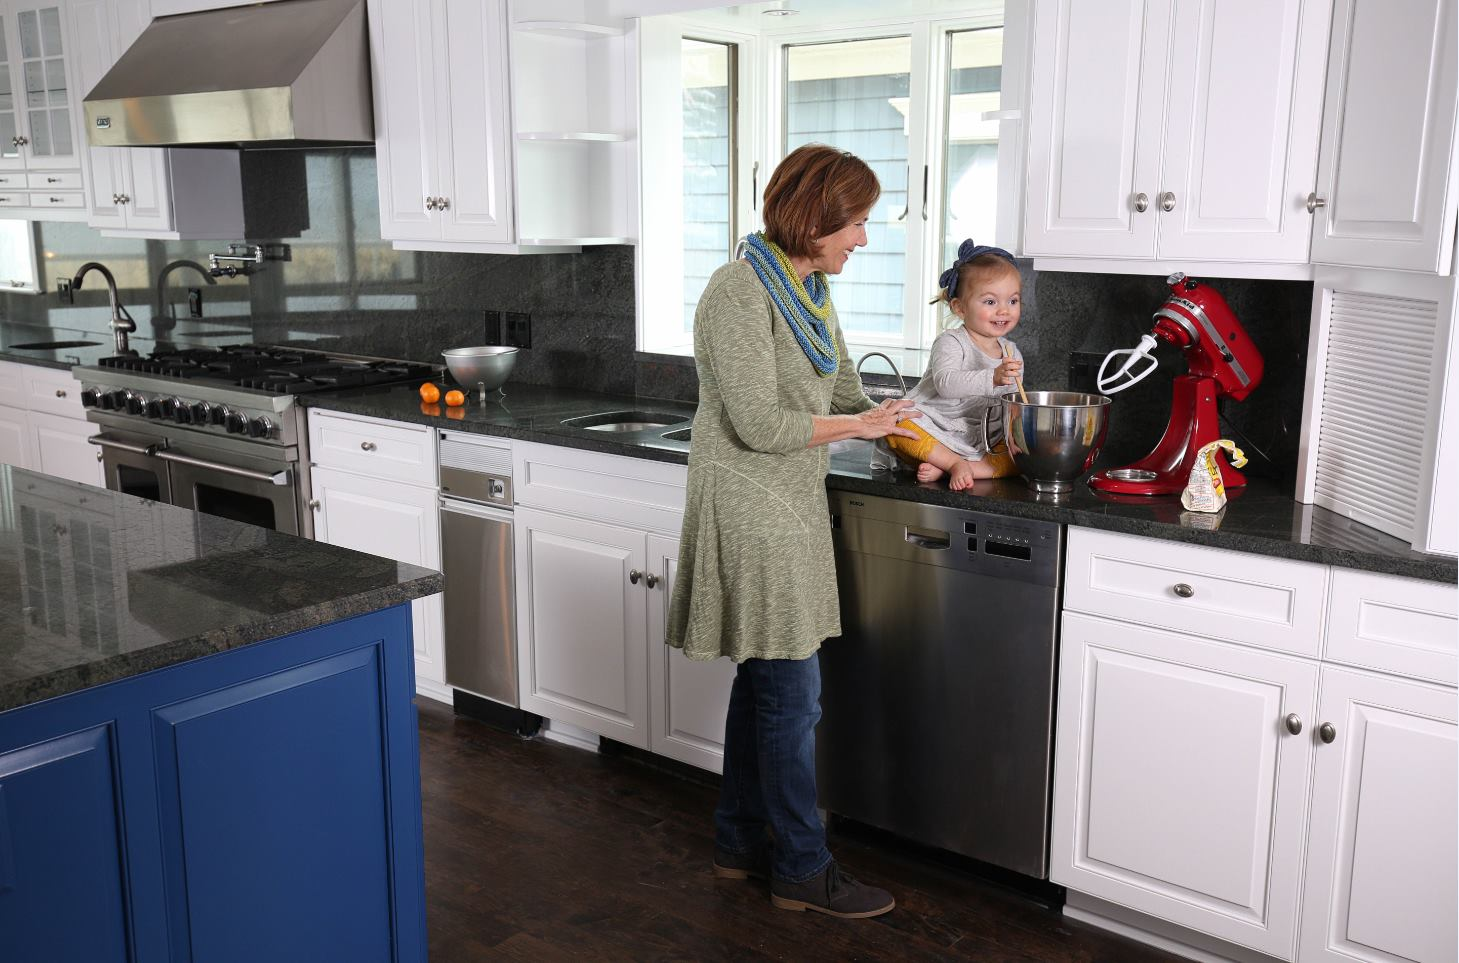 mother and baby in kitchen on counter